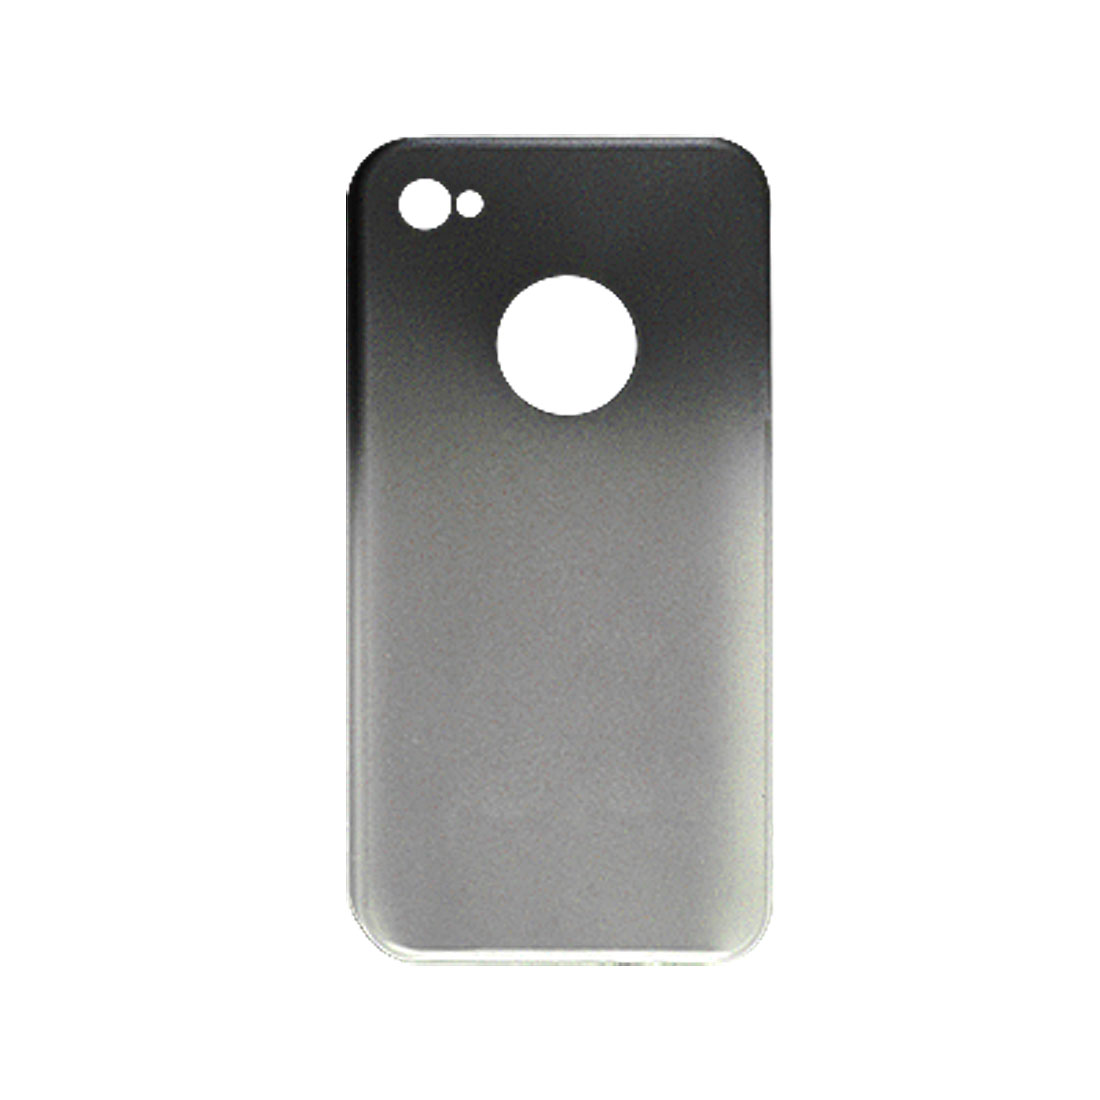 Rubberized Hard Plastic Dual Colors Back Case for iPhone 4 4G